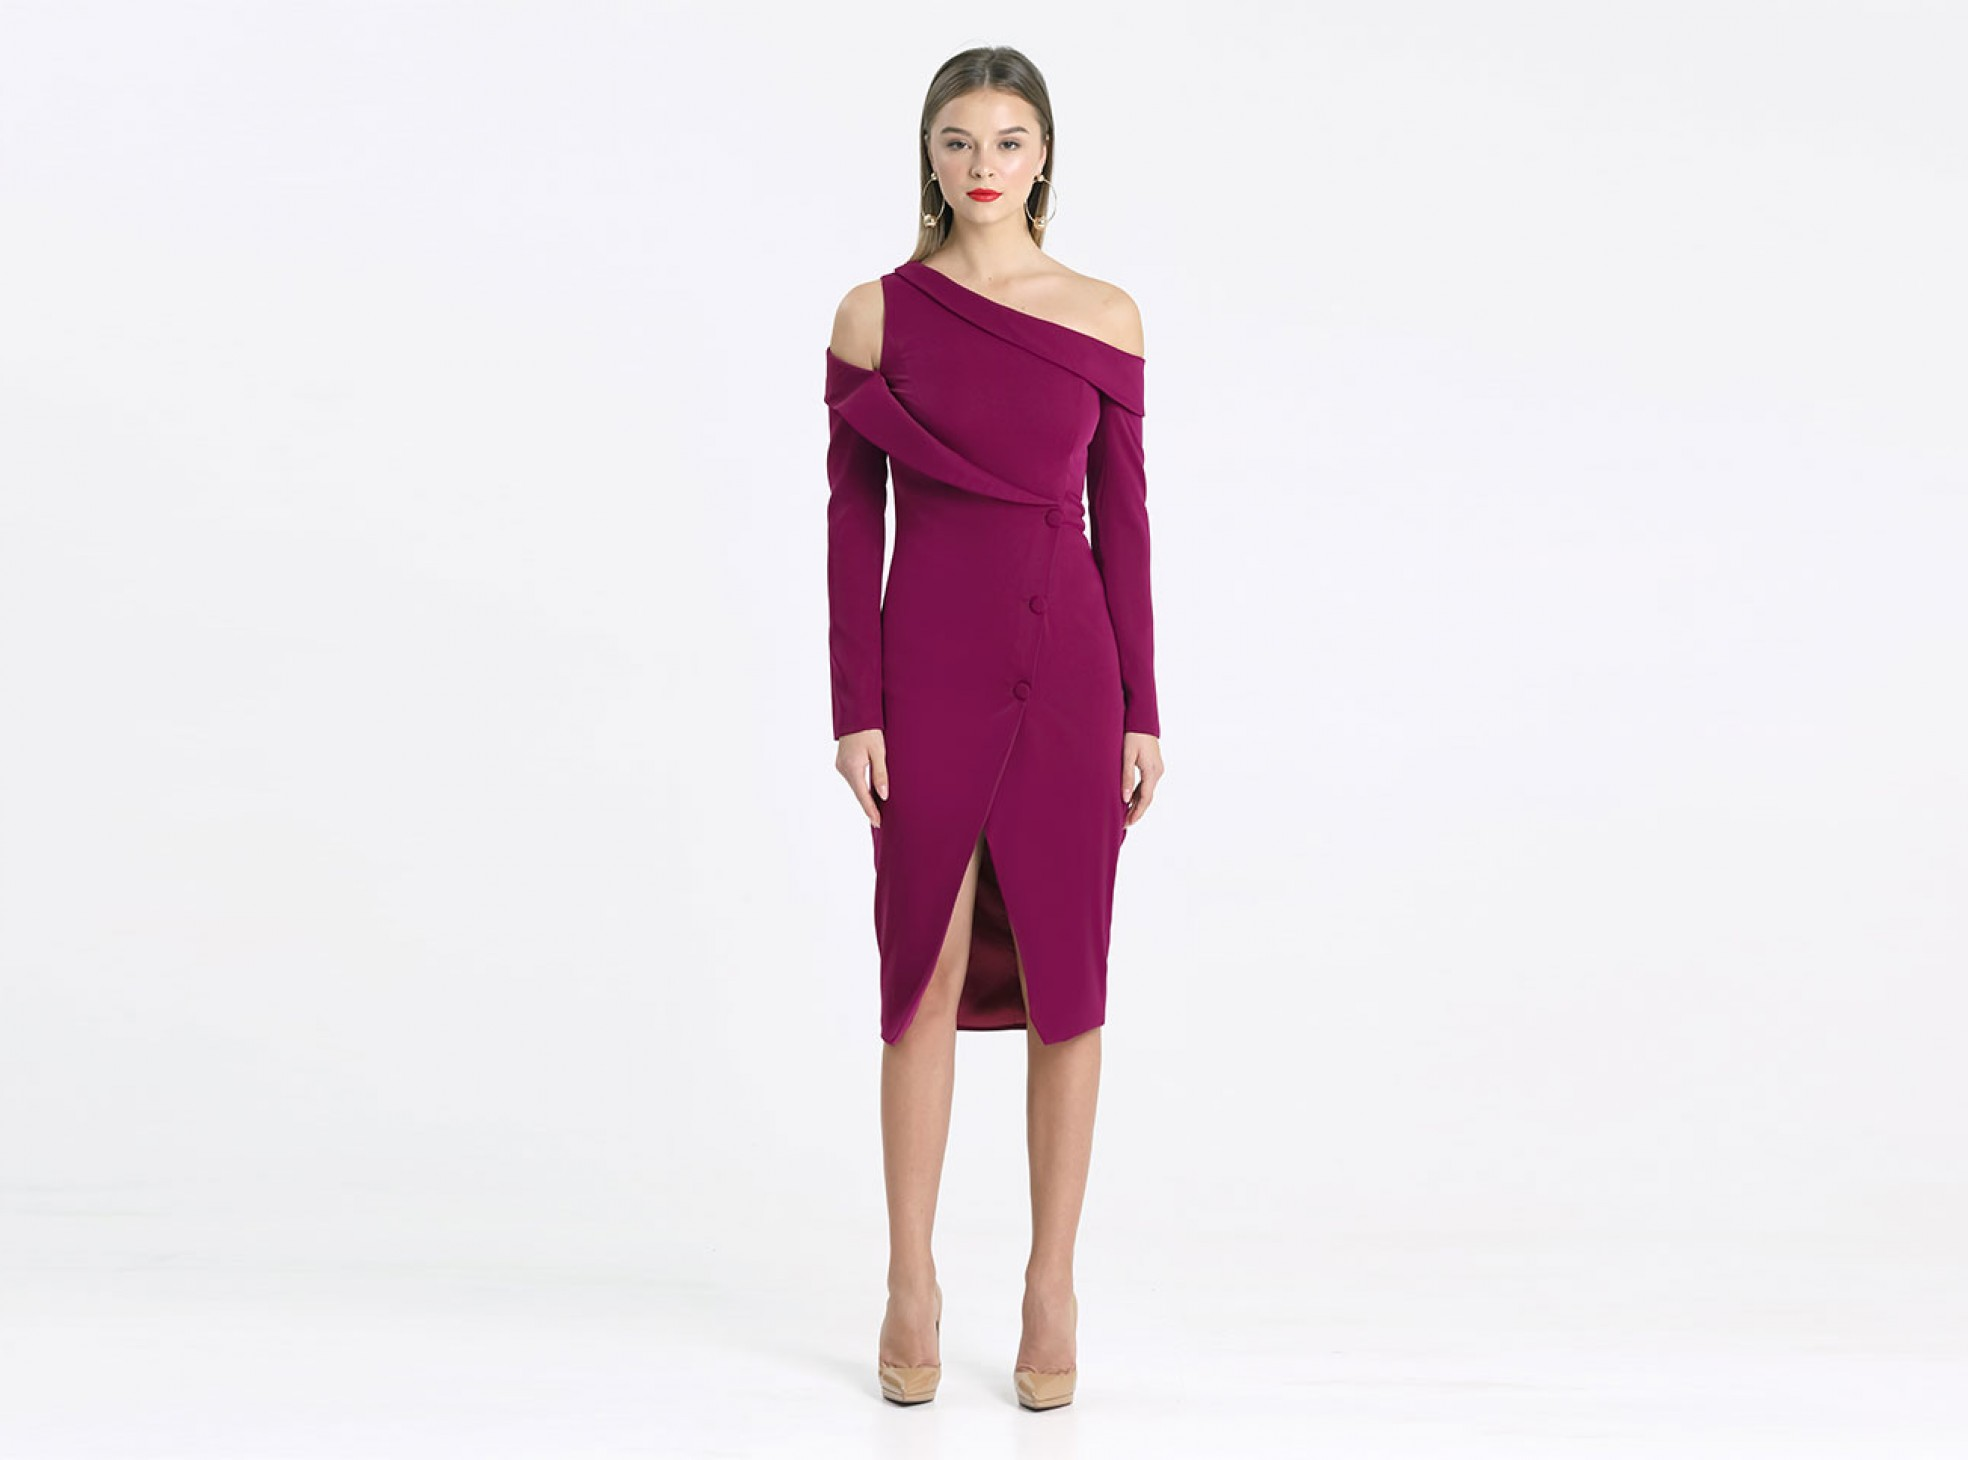 cbc6885842 off the shoulder long sleeve tuxedo midi wrap dress in purple   MAISION.COM  : Fashion Online Shop curated Indonesia - Shop Baju Branded